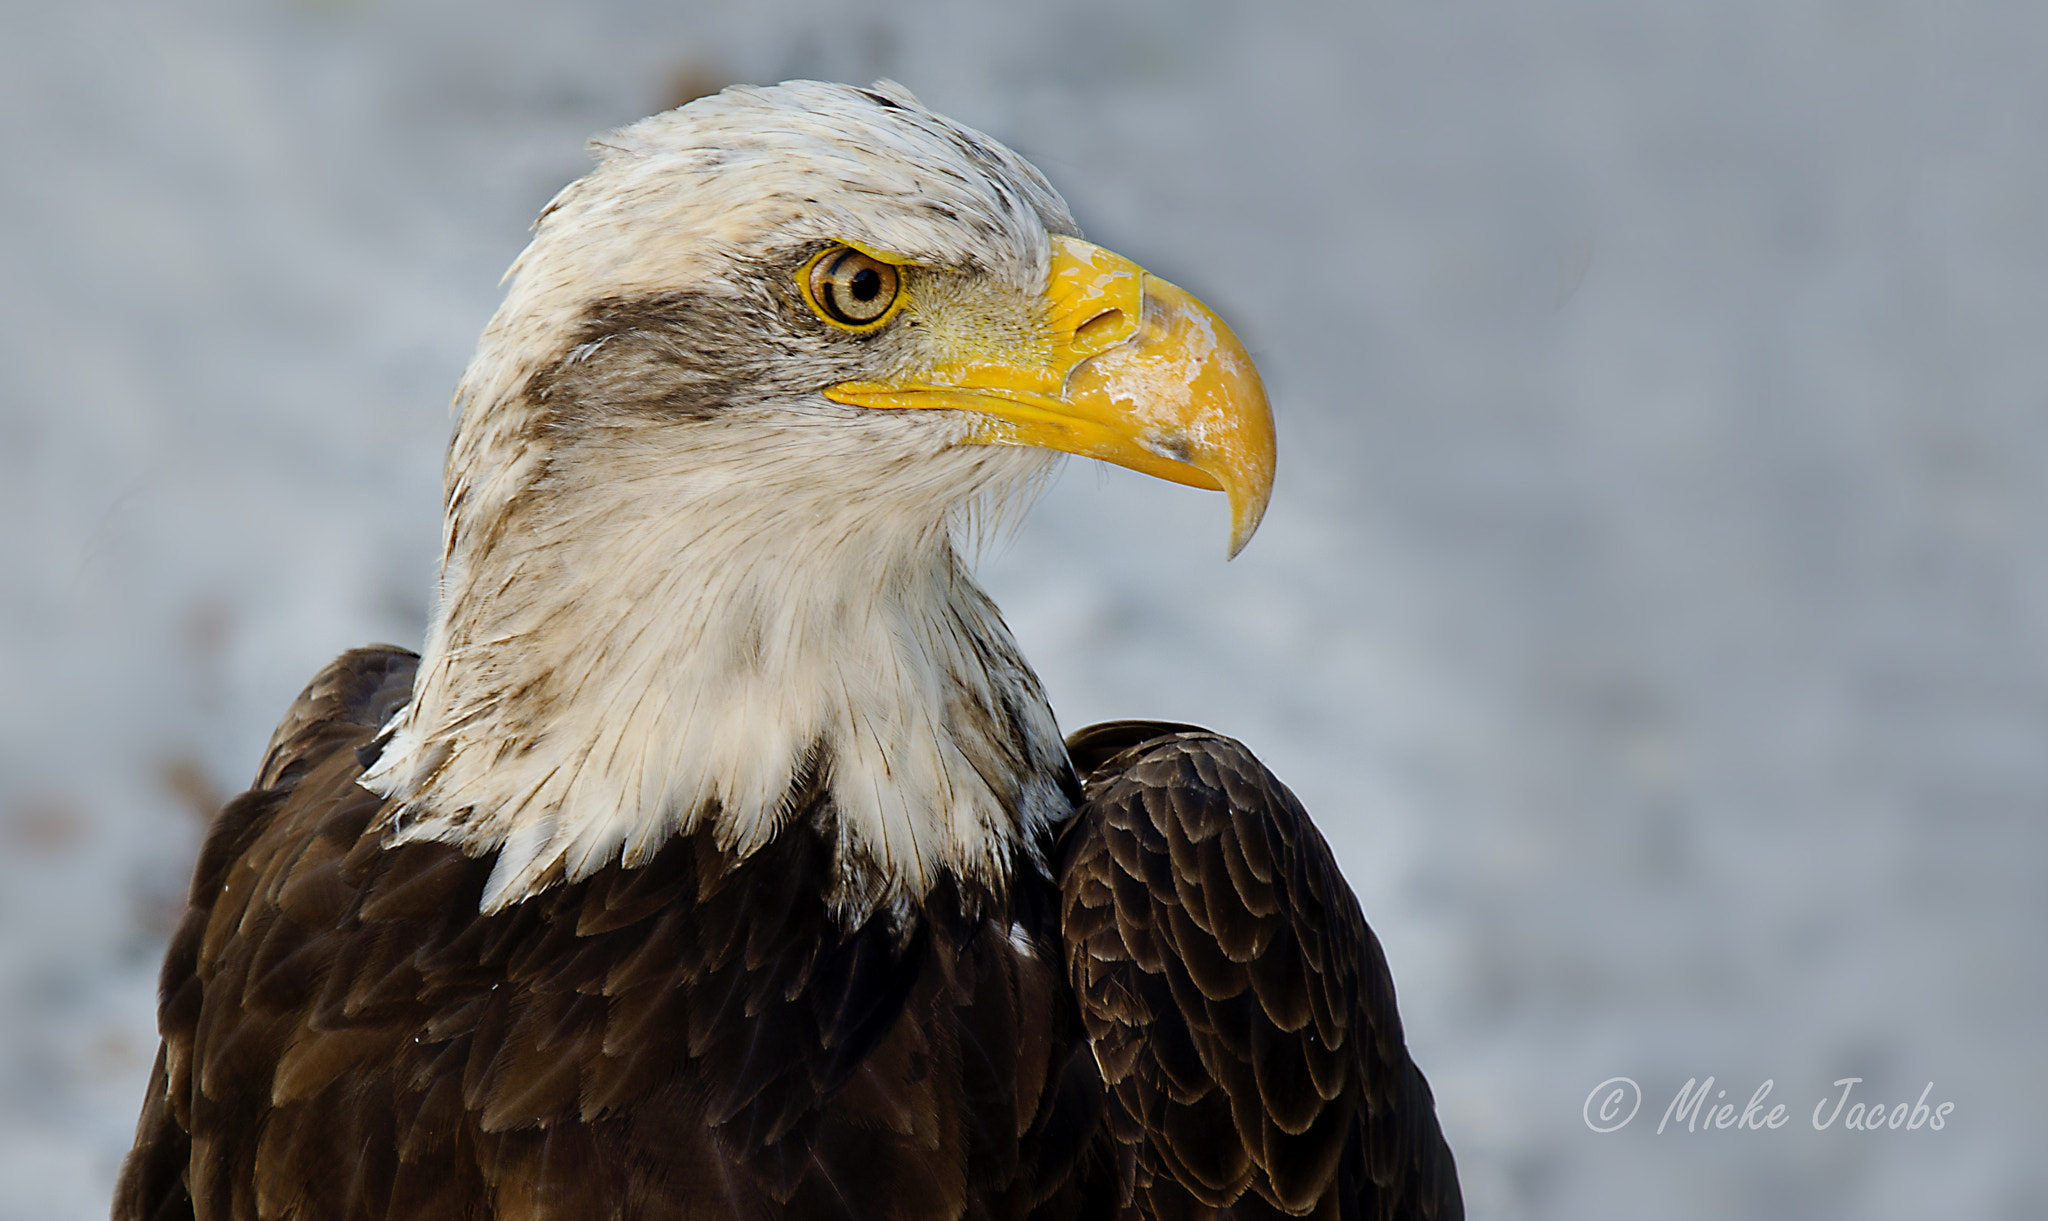 Photograph The Eye of the Eagle by Mieke Jacobs on 500px